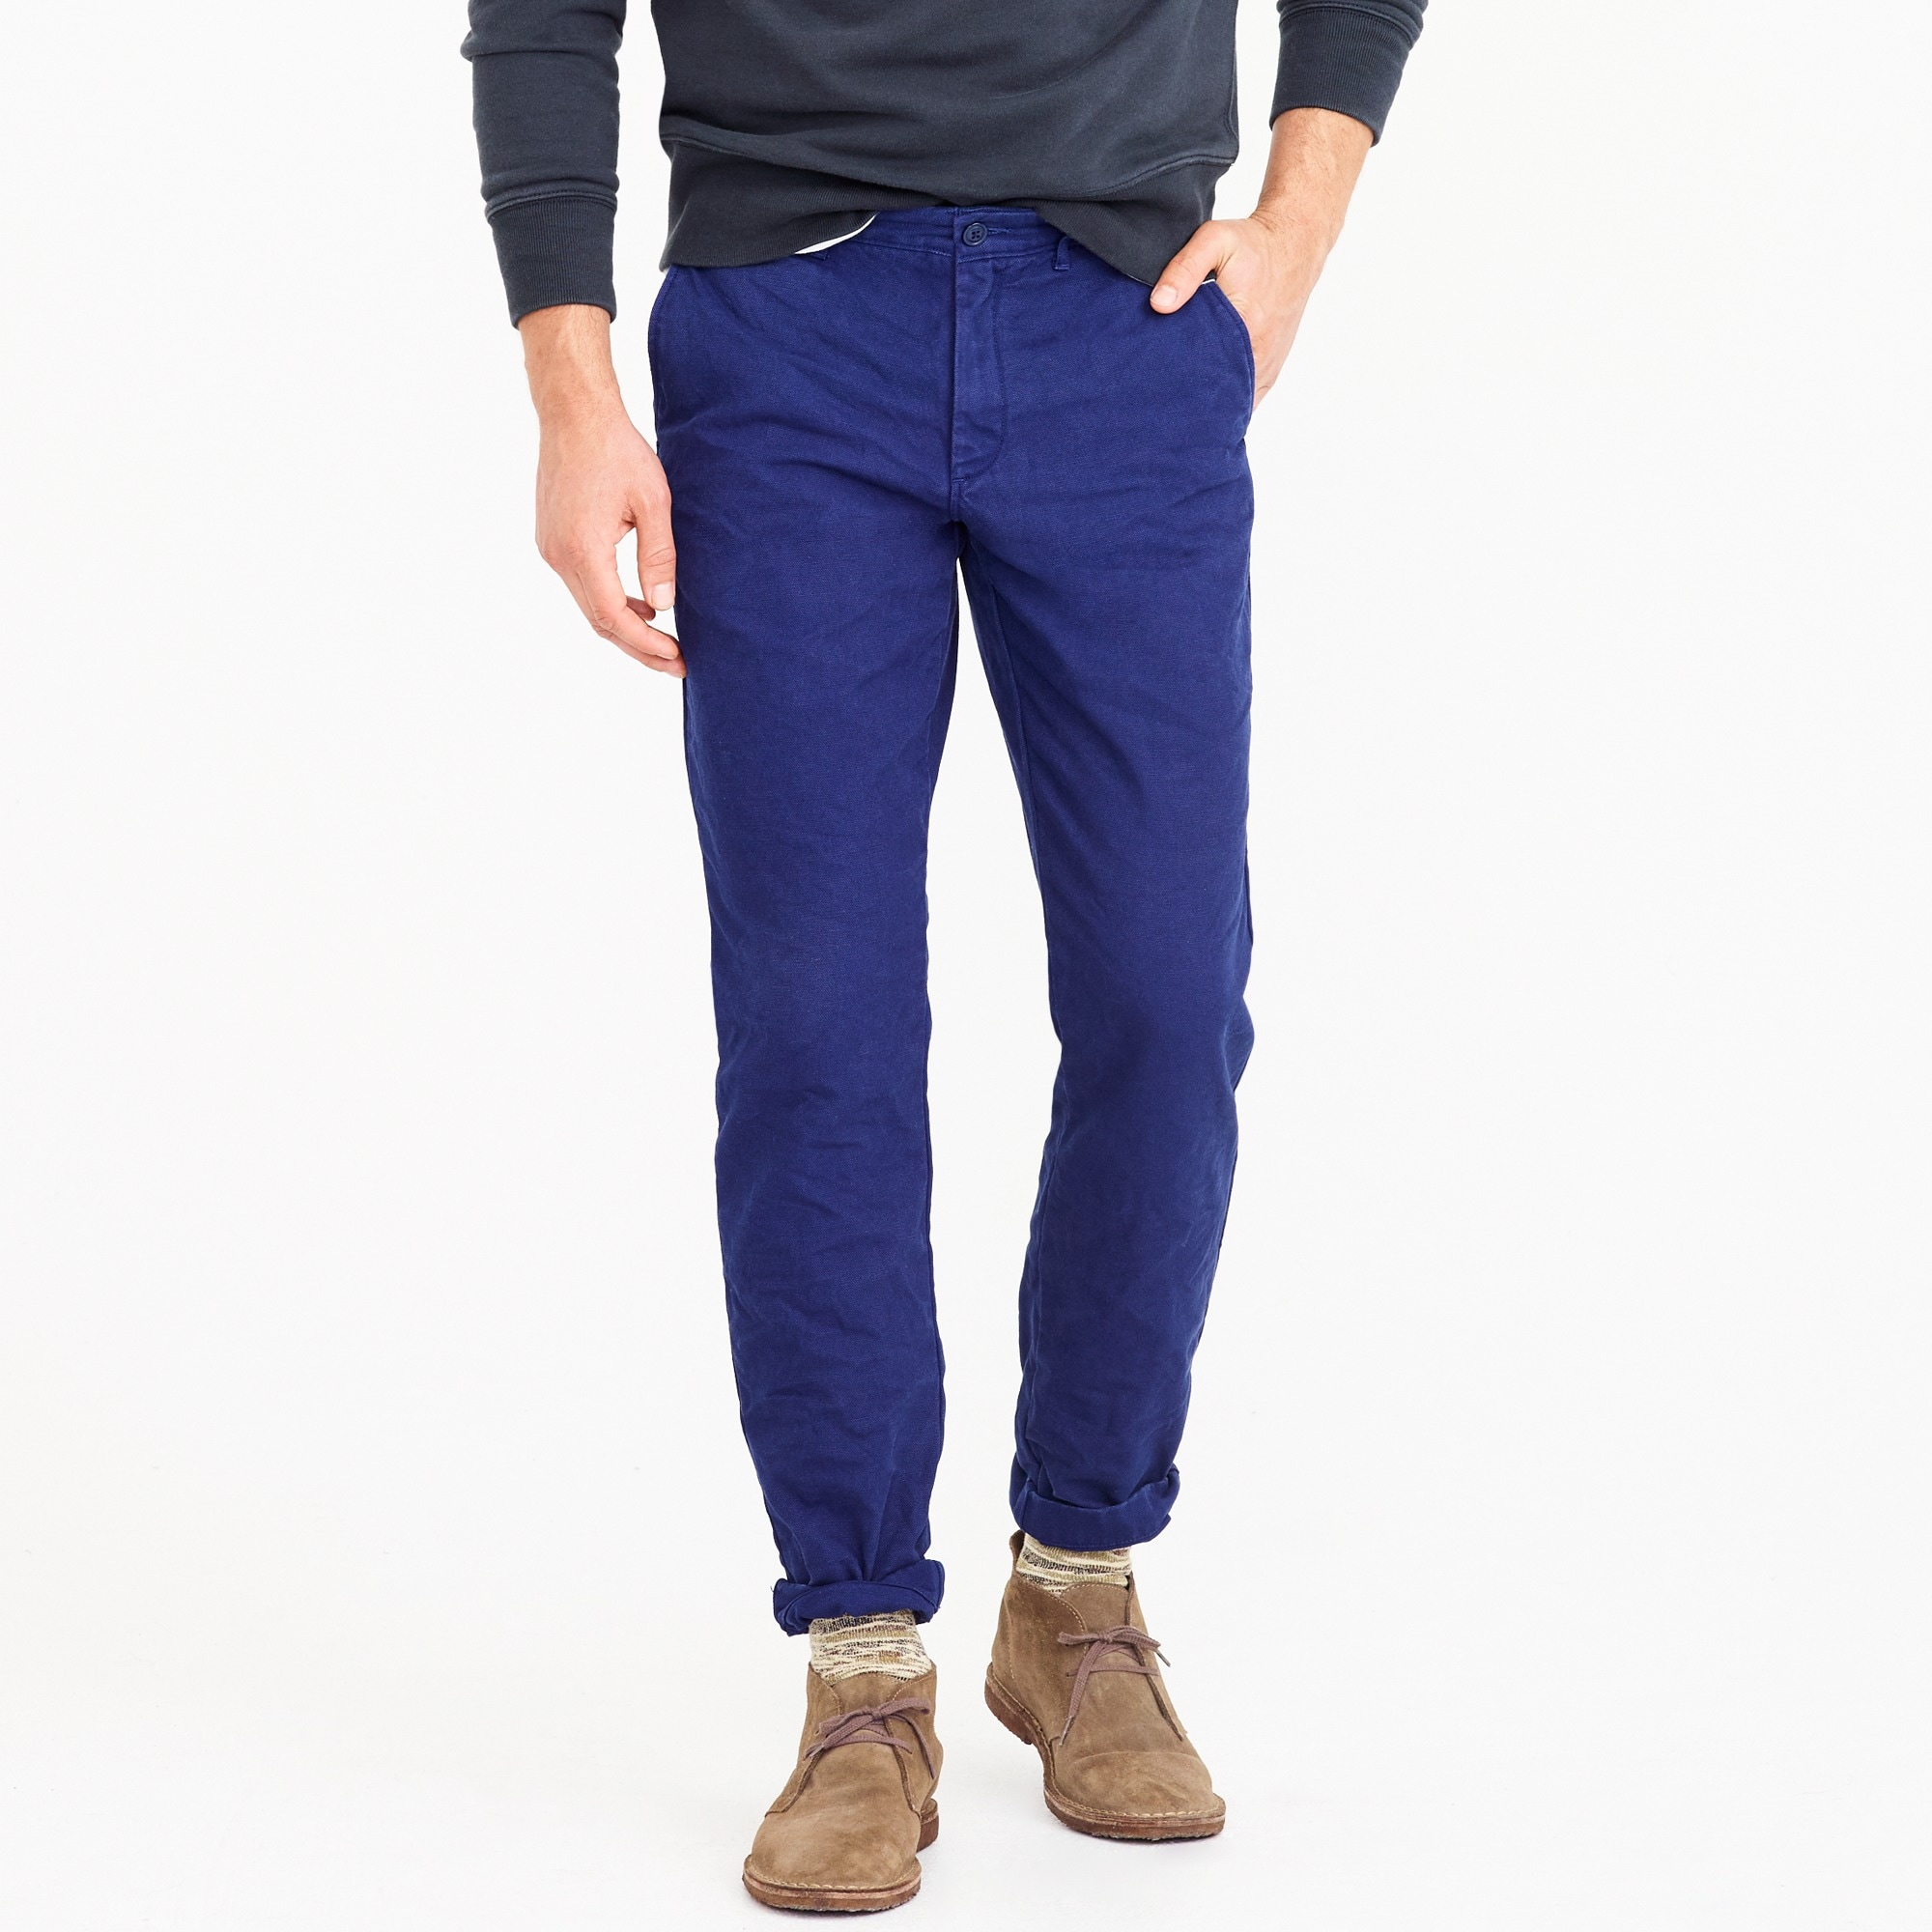 770 Straight-fit chino pant in garment-dyed canvas men pants c